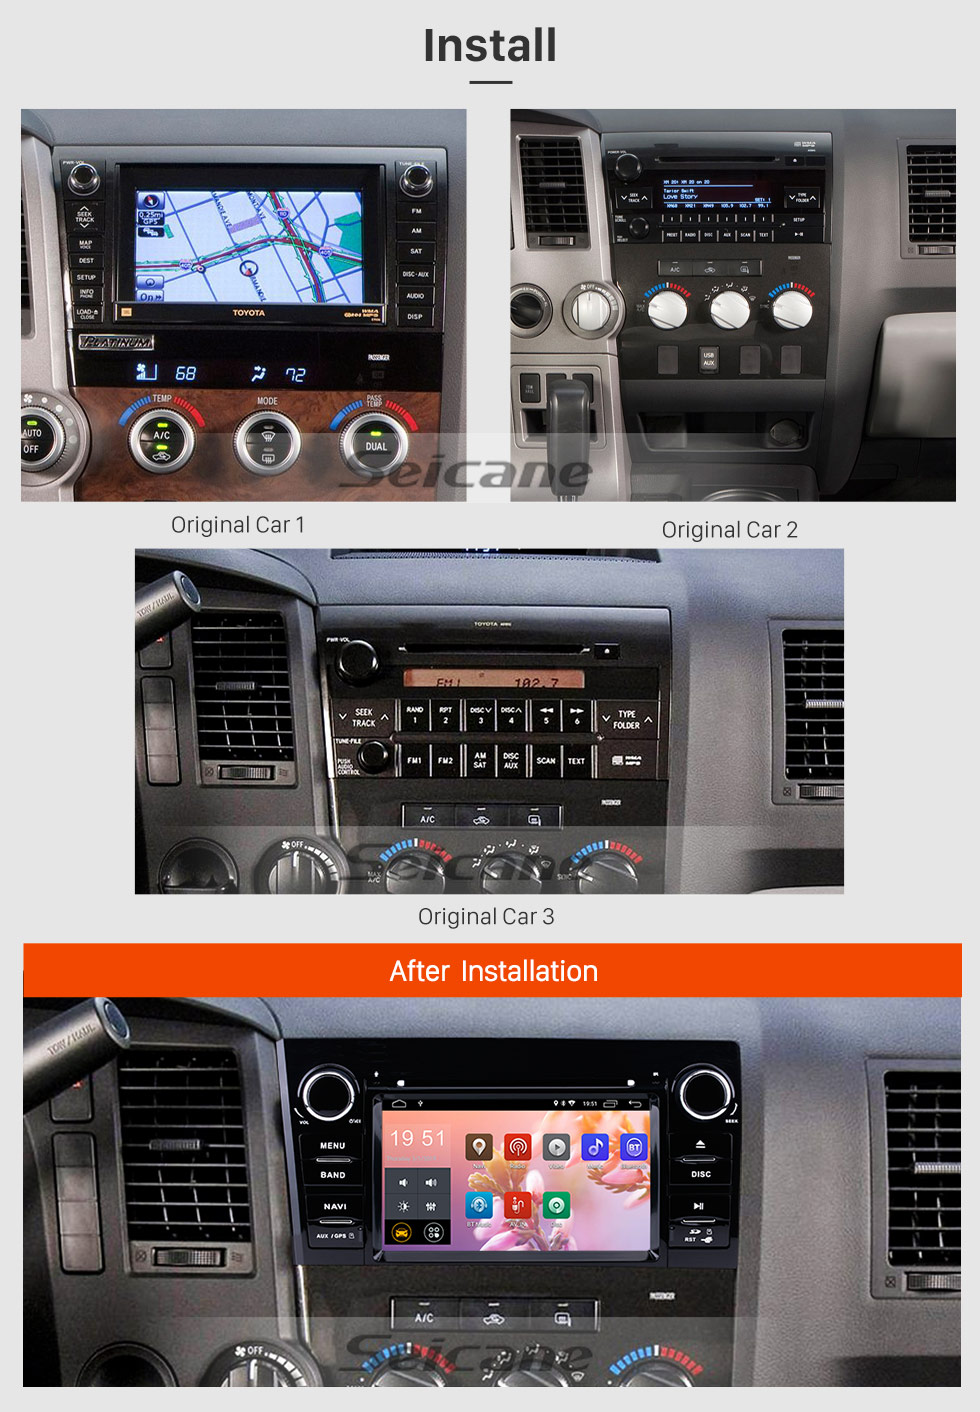 Seicane 7 inch Android 8.1 Touchscreen GPS Navigation Radio for 2008-2015 Toyota Sequoia/2006-2013 Tundra with Bluetooth WIFI support Carplay SWC TPMS